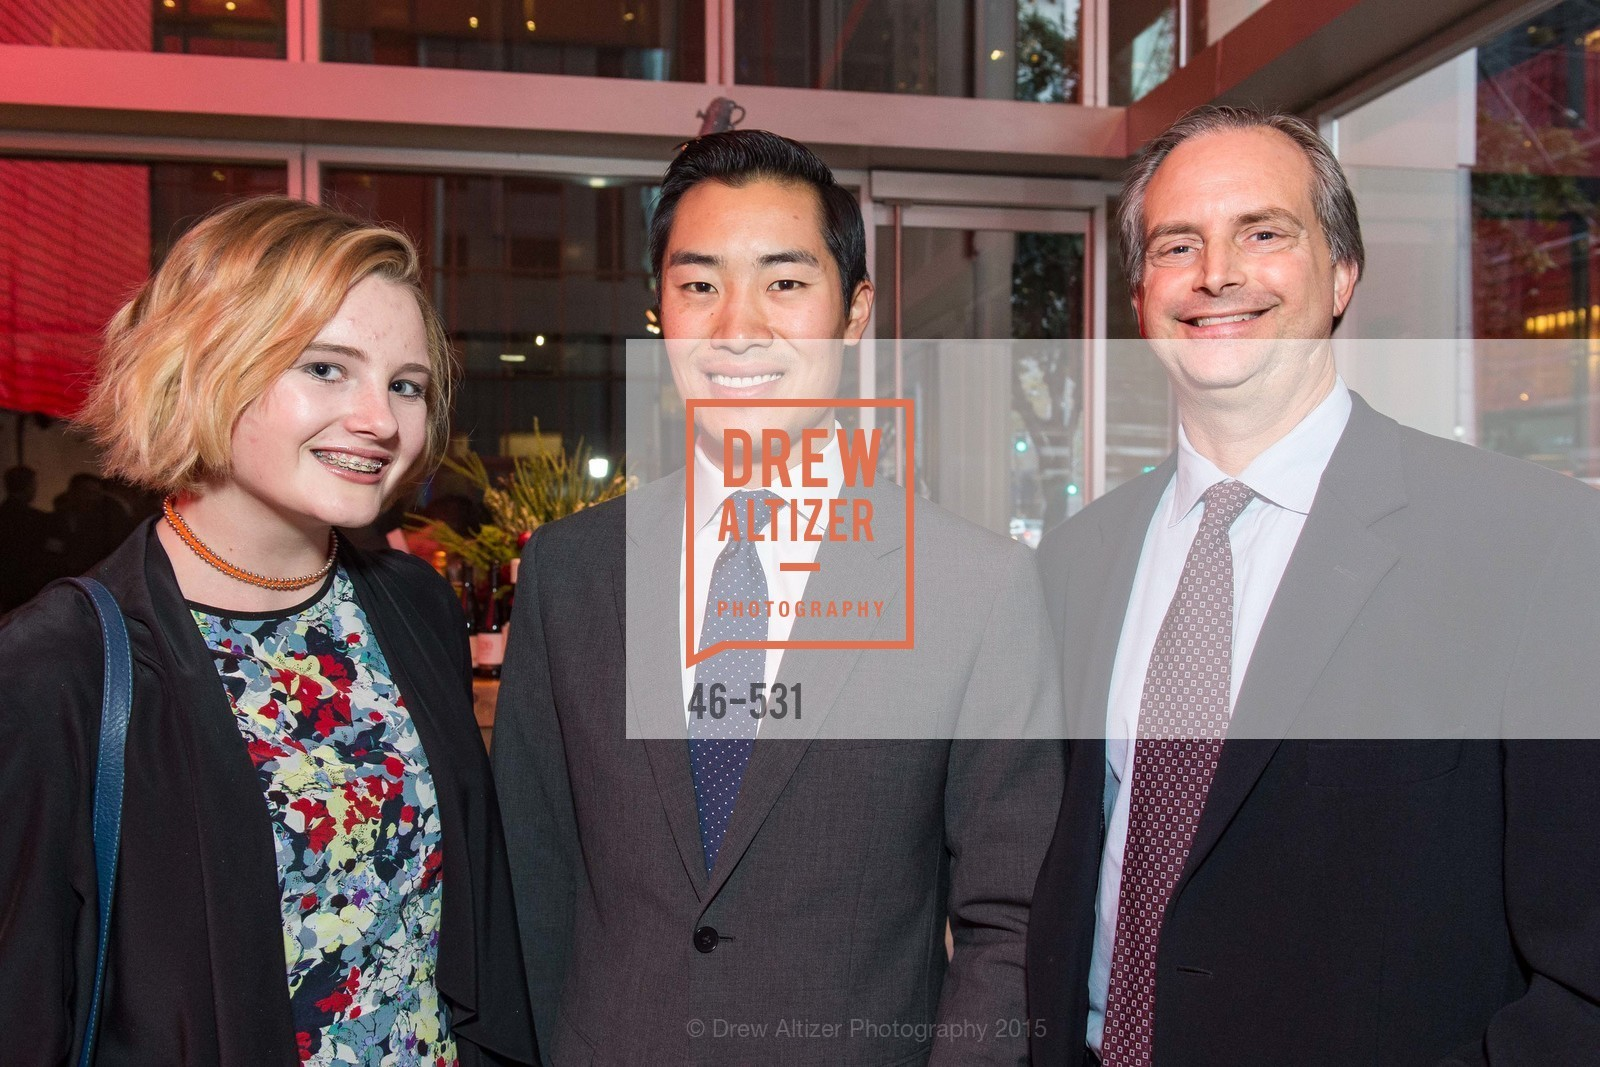 Chloe Kilroy, Brandon Wang, Scott Halfwassen, Kilroy Unveiling Presents Virtual Depictions: San Francisco by Refik Anadol, 350 Mission Street. 350 Mission Street, November 16th, 2015,Drew Altizer, Drew Altizer Photography, full-service agency, private events, San Francisco photographer, photographer california